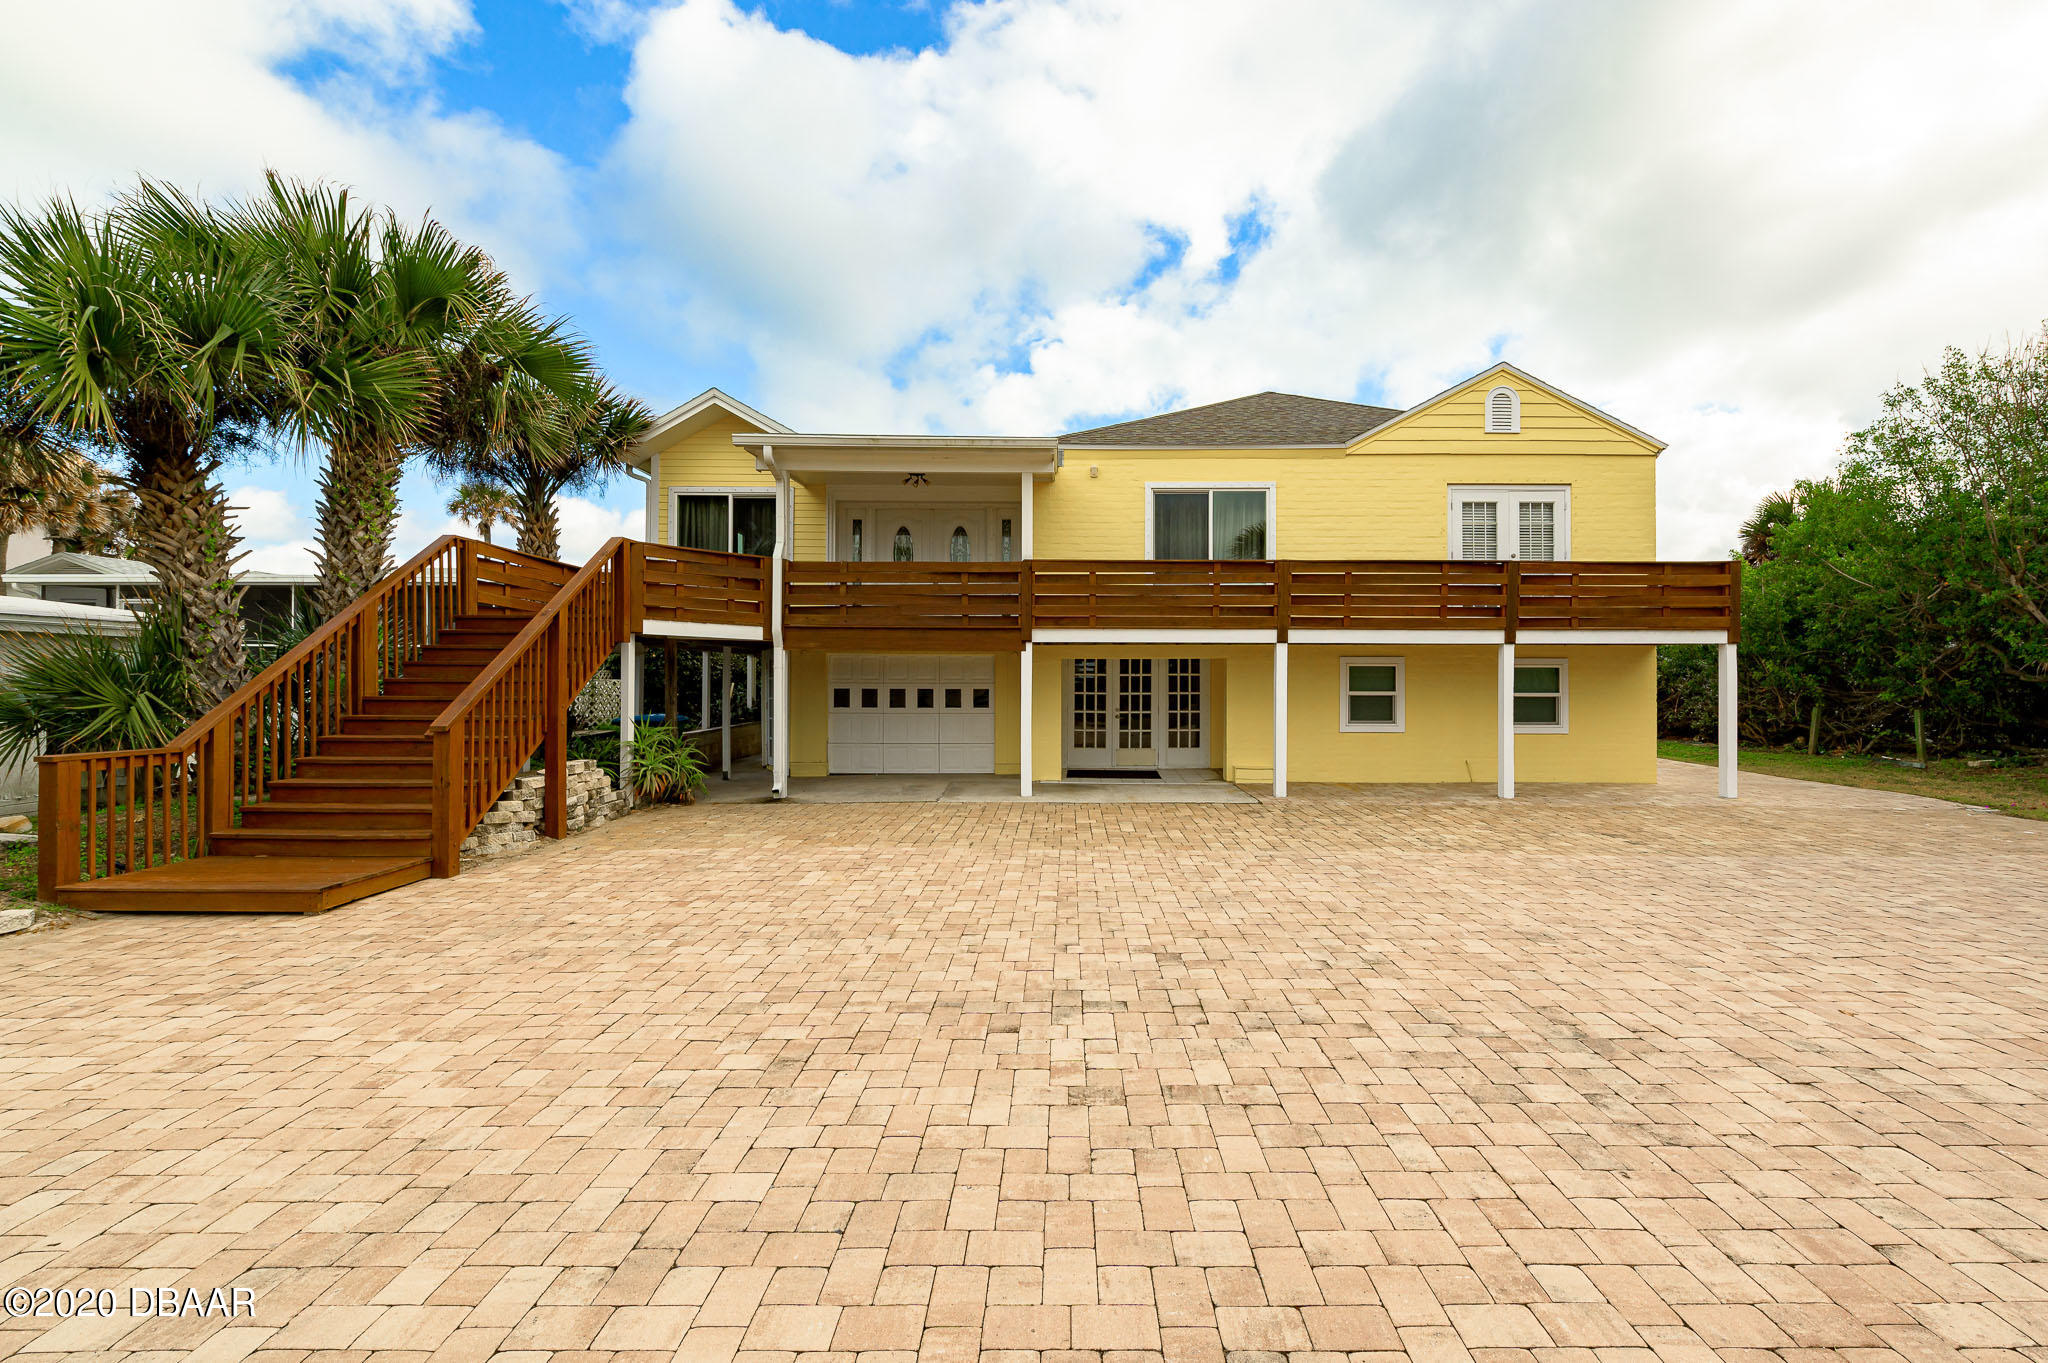 Photo of 2801 S Atlantic Avenue, Daytona Beach Shores, FL 32118